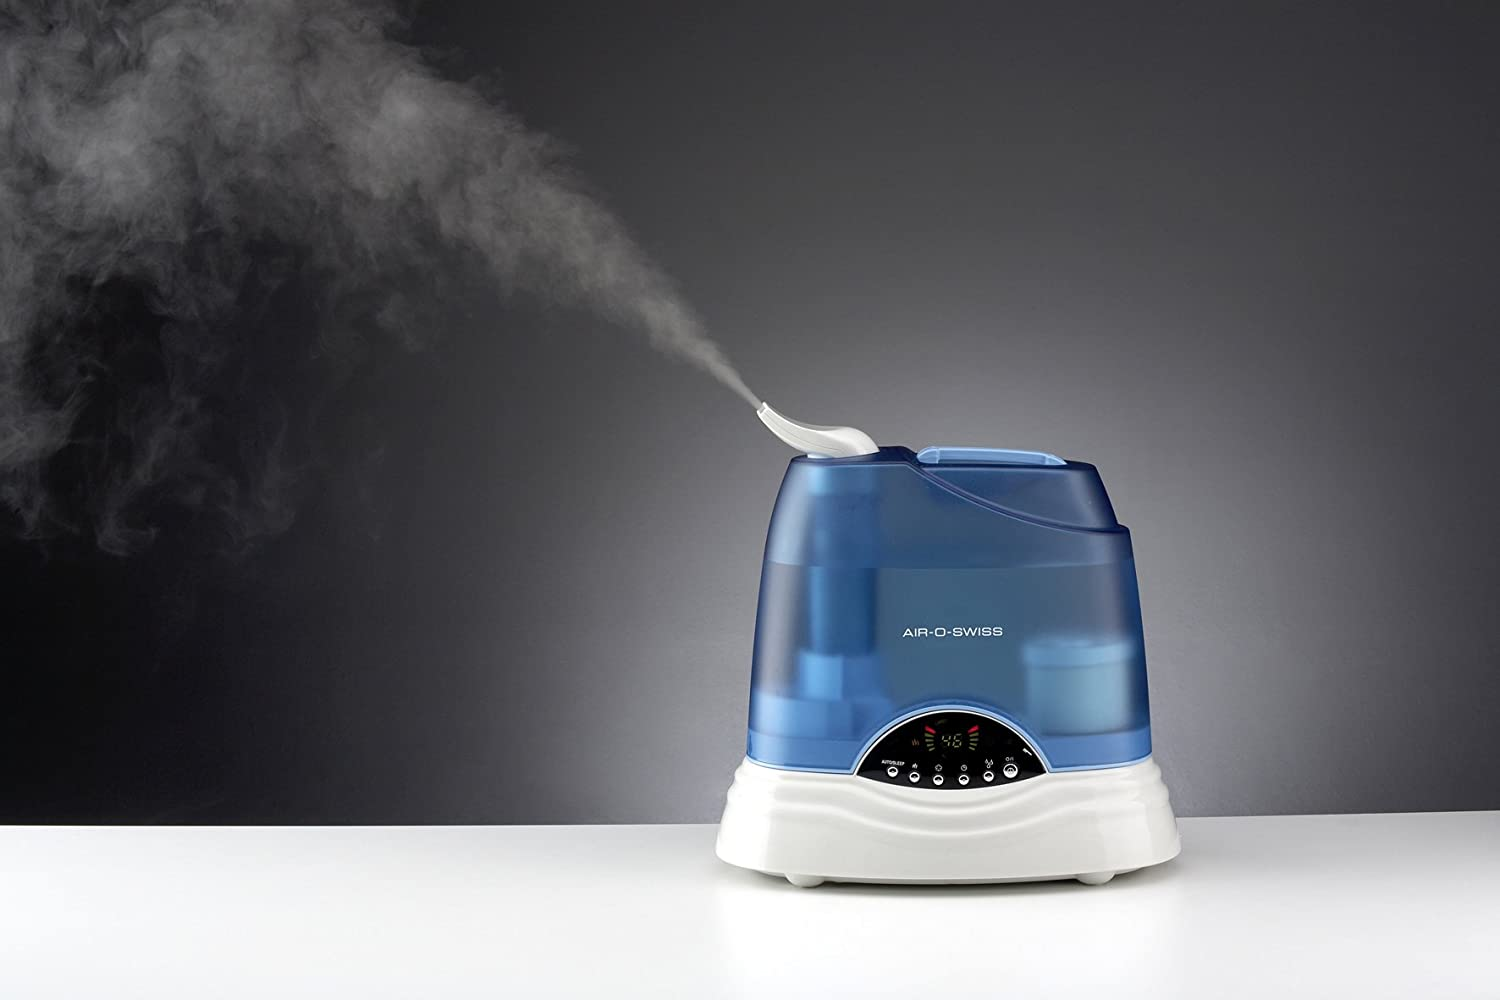 Tips for buying humidifier